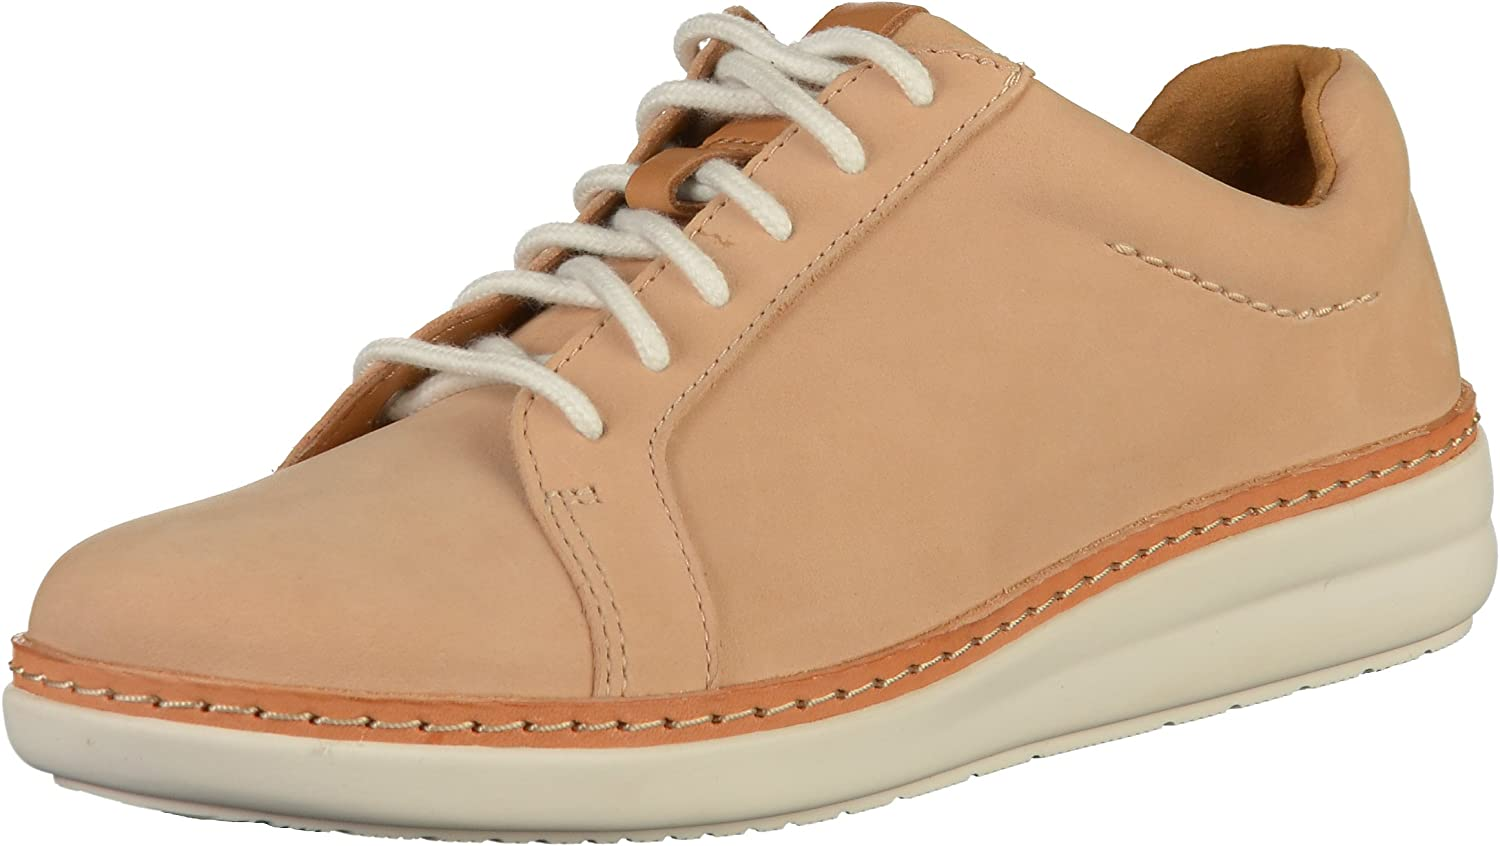 Hobart subterraneo Indiferencia  Clarks Women's Amberlee Rosa Low-Top Sneakers: Amazon.co.uk: Shoes & Bags